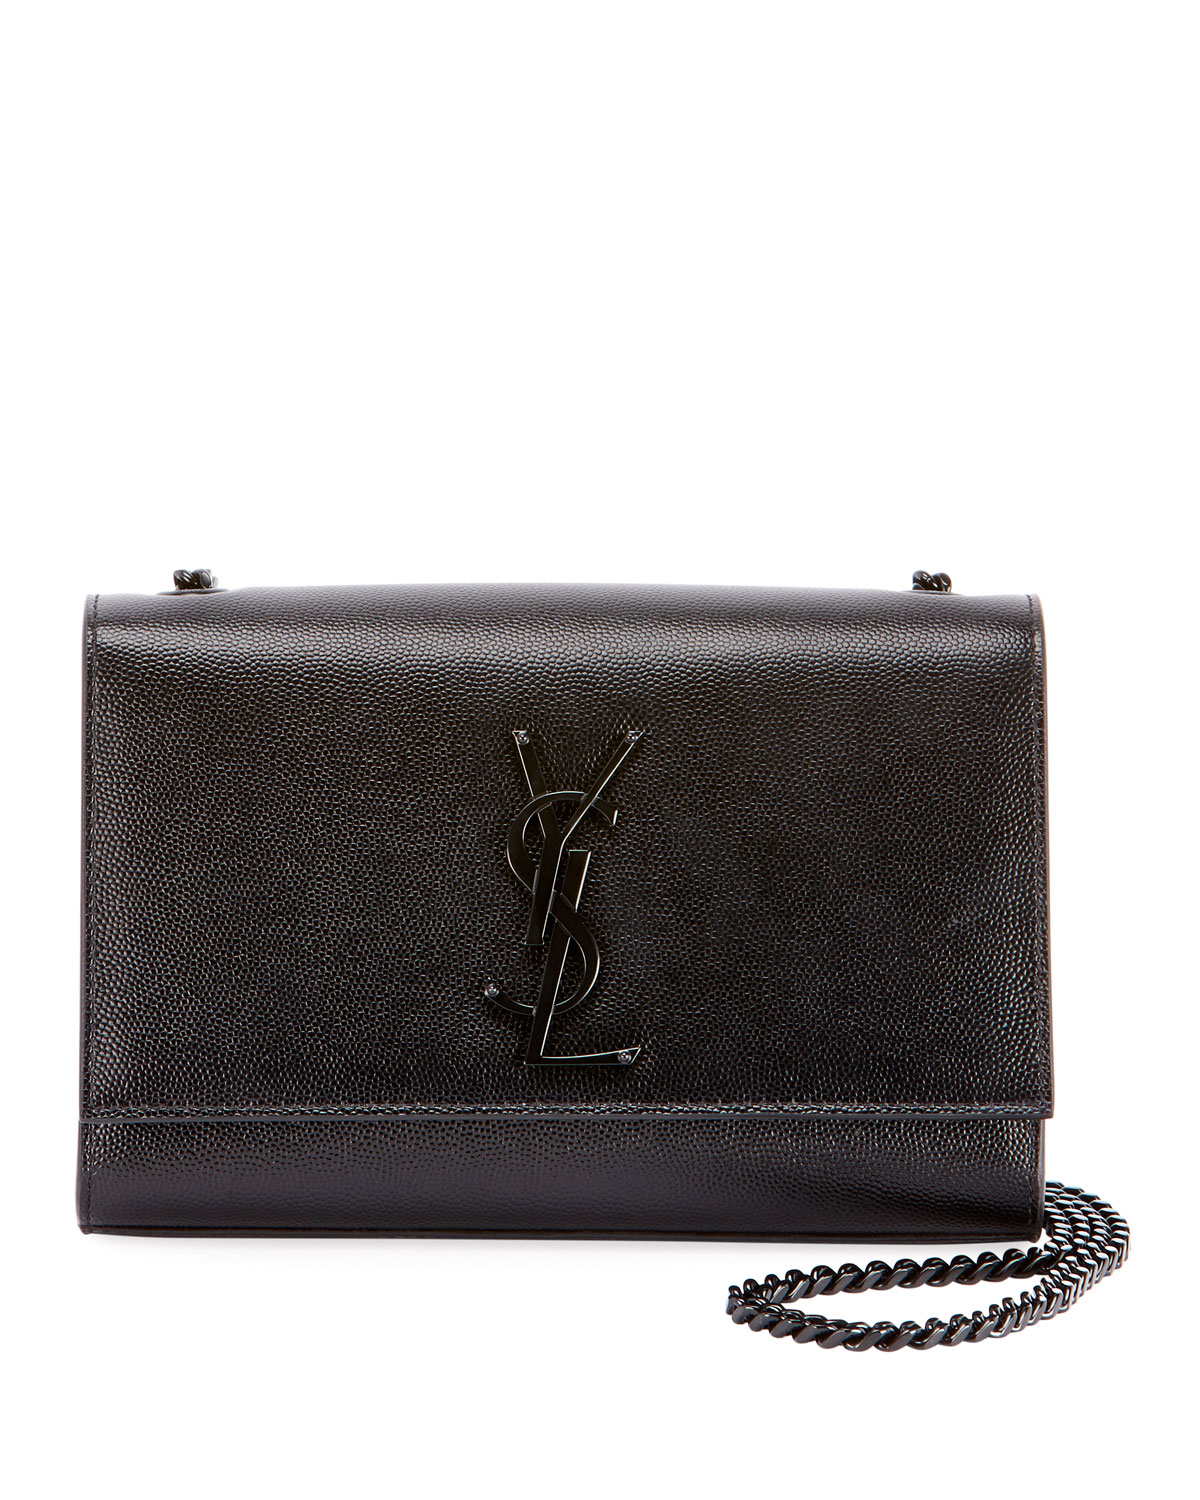 Saint Laurent Kate Monogram YSL Small Chain Shoulder Bag  948e87ab07700